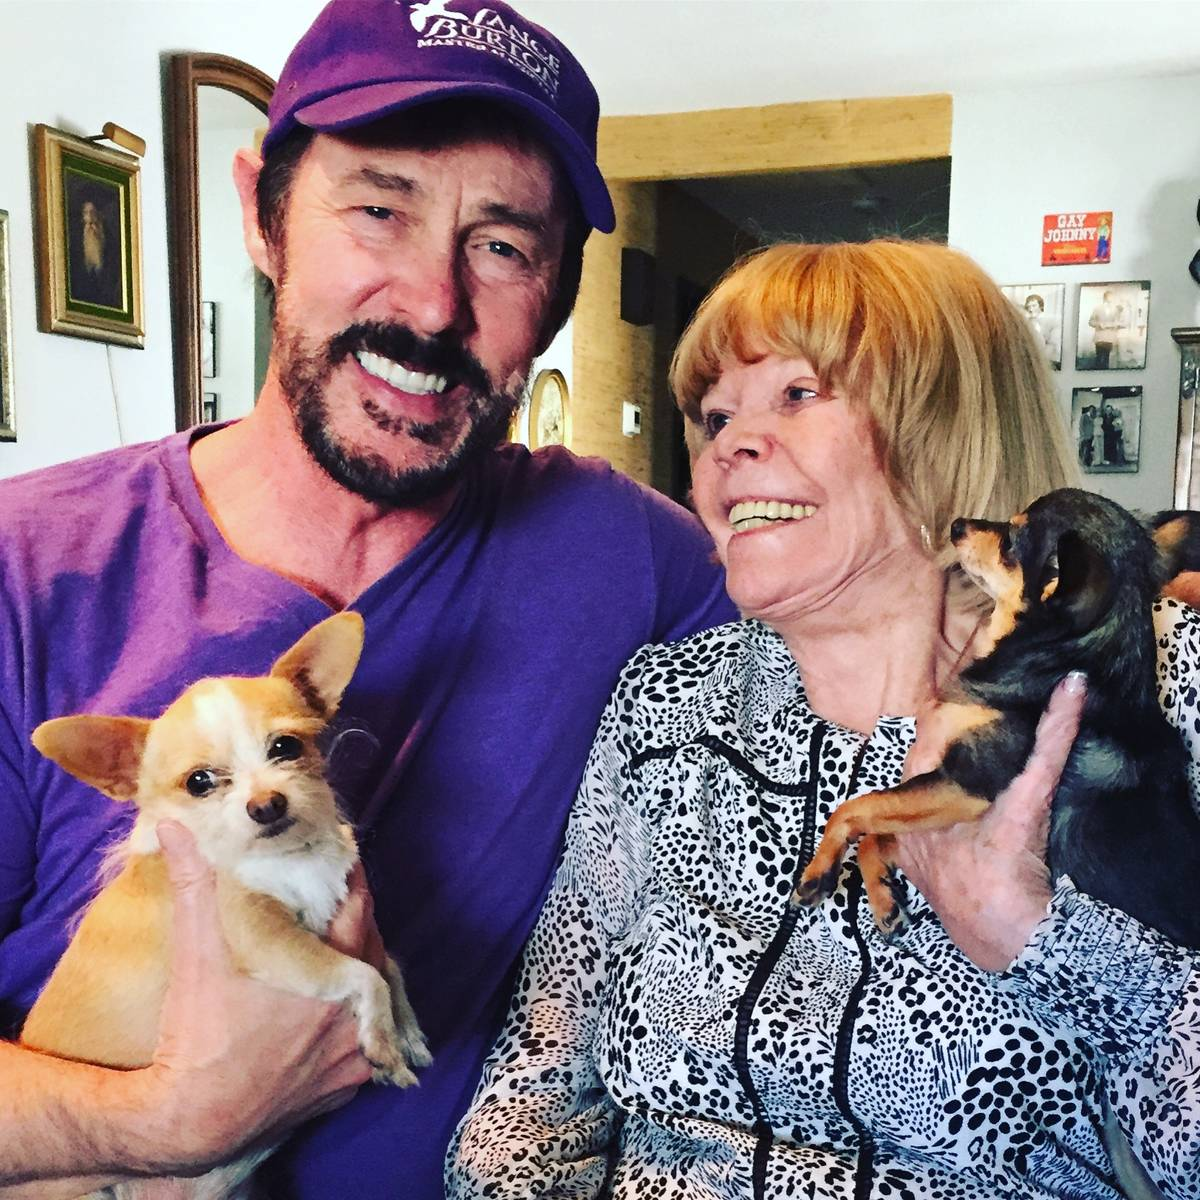 Lance Burton and Pam Thompson are shown with the chihuahuas Molly and Georgie in this photo fro ...